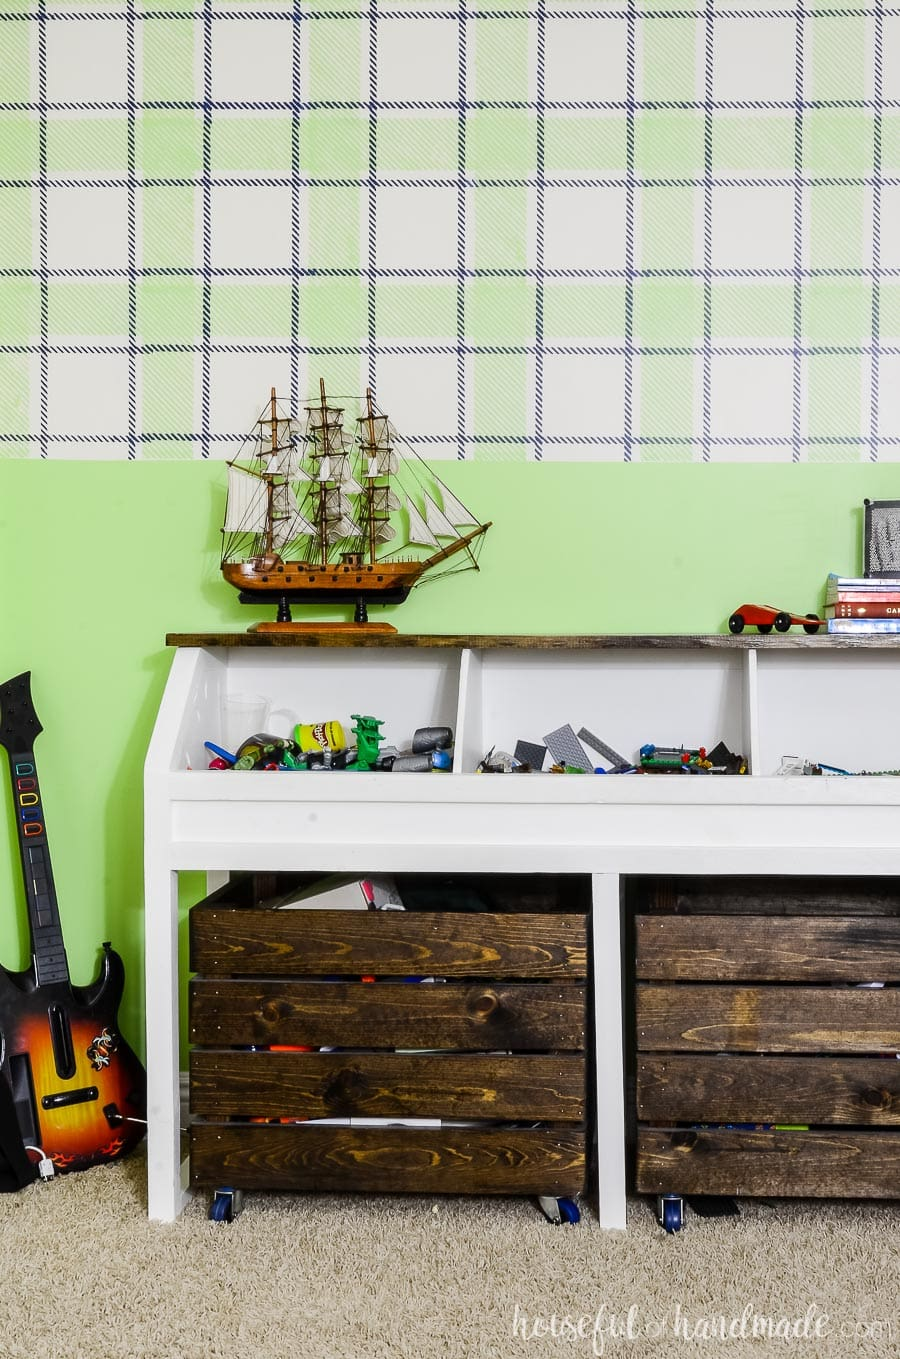 Rustic toy storage console full of Legos and action figures. In front of a statement wall painted with with a green & navy plaid design on top and green solid on the bottom. Wii guitar in the corner.